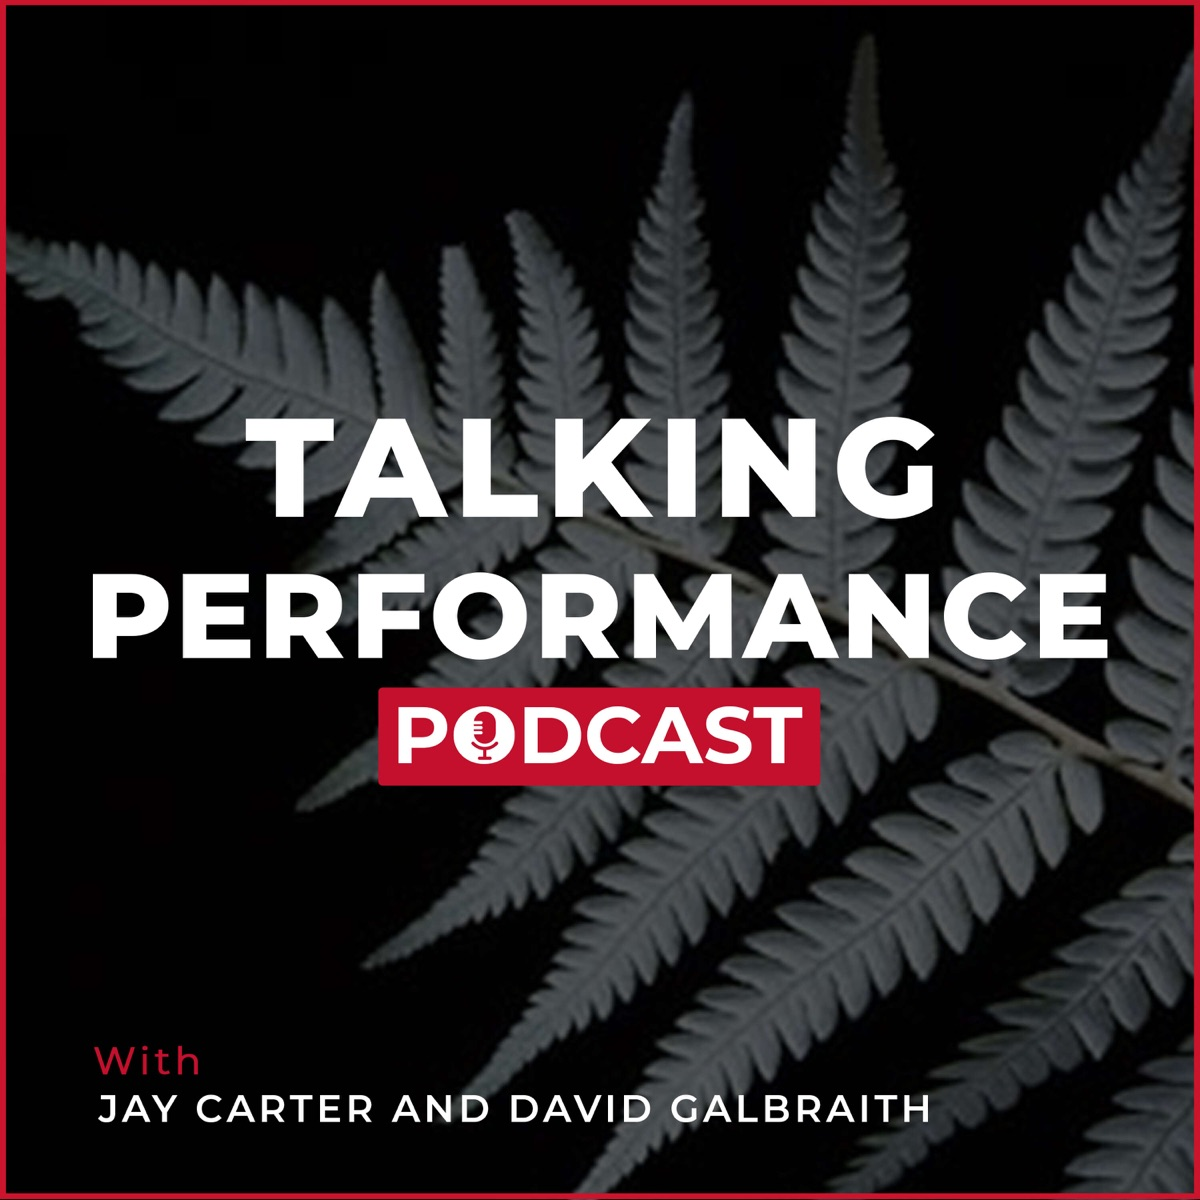 Talking Performance Episode 22 Reflection of Dave Dillon